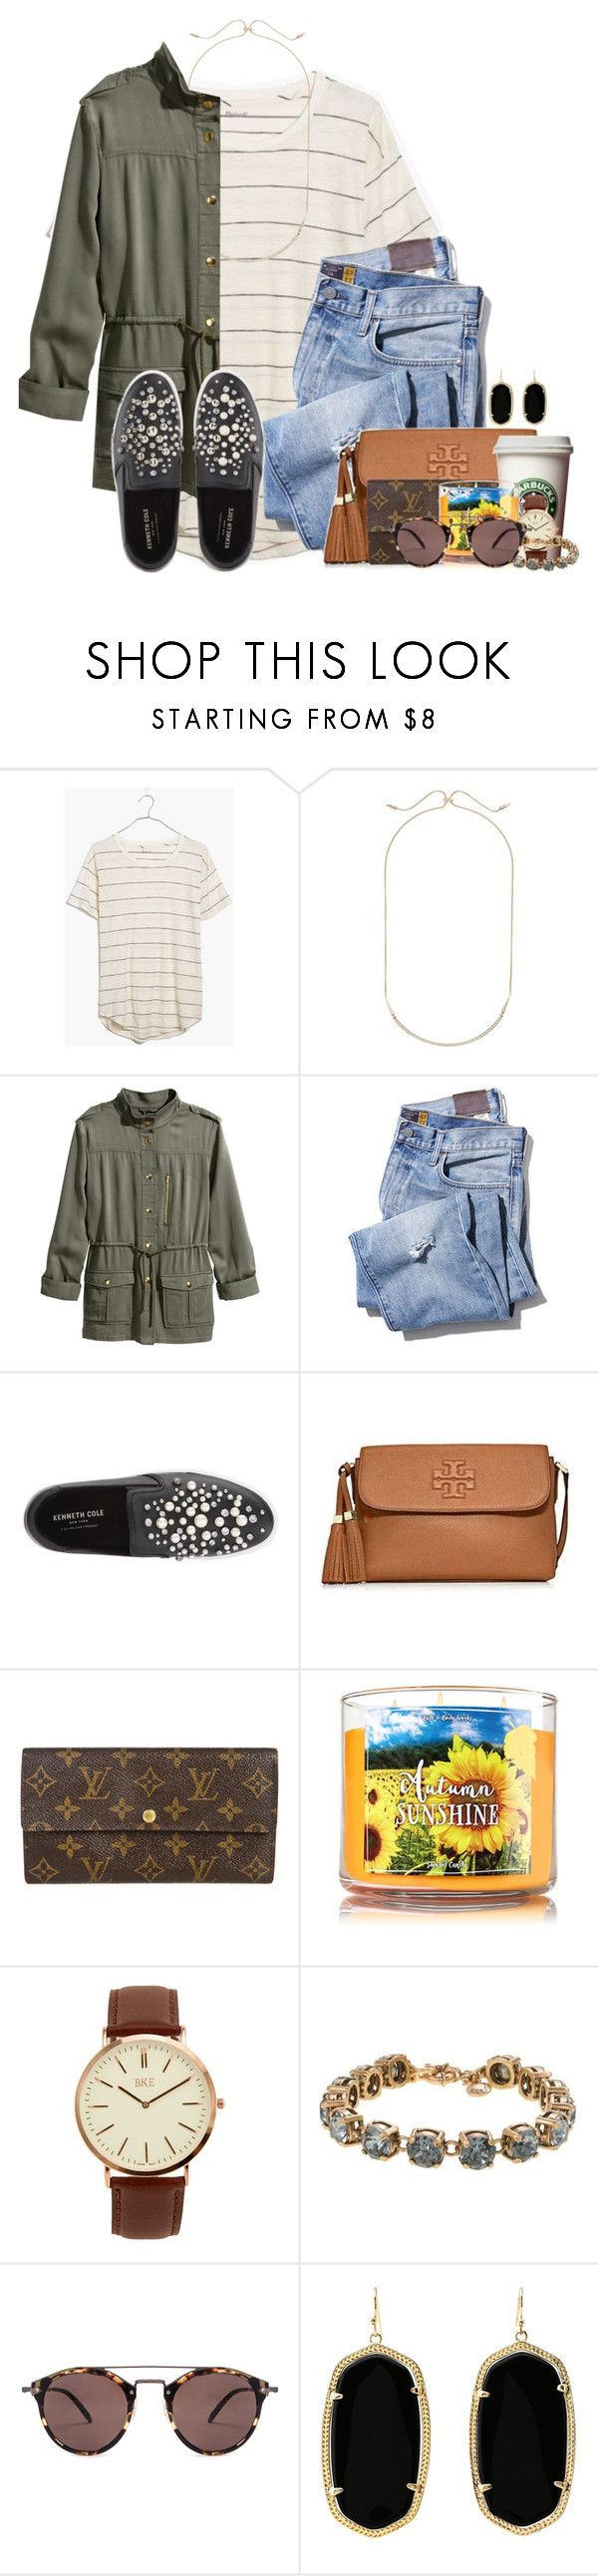 """""""She is clothed in strength and beauty..."""" by flroasburn ❤ liked on Polyvore featuring Madewell, Kendra Scott, H&M, Kenneth Cole, Tory Burch, Louis Vuitton, BKE, J.Crew and Oliver Peoples"""